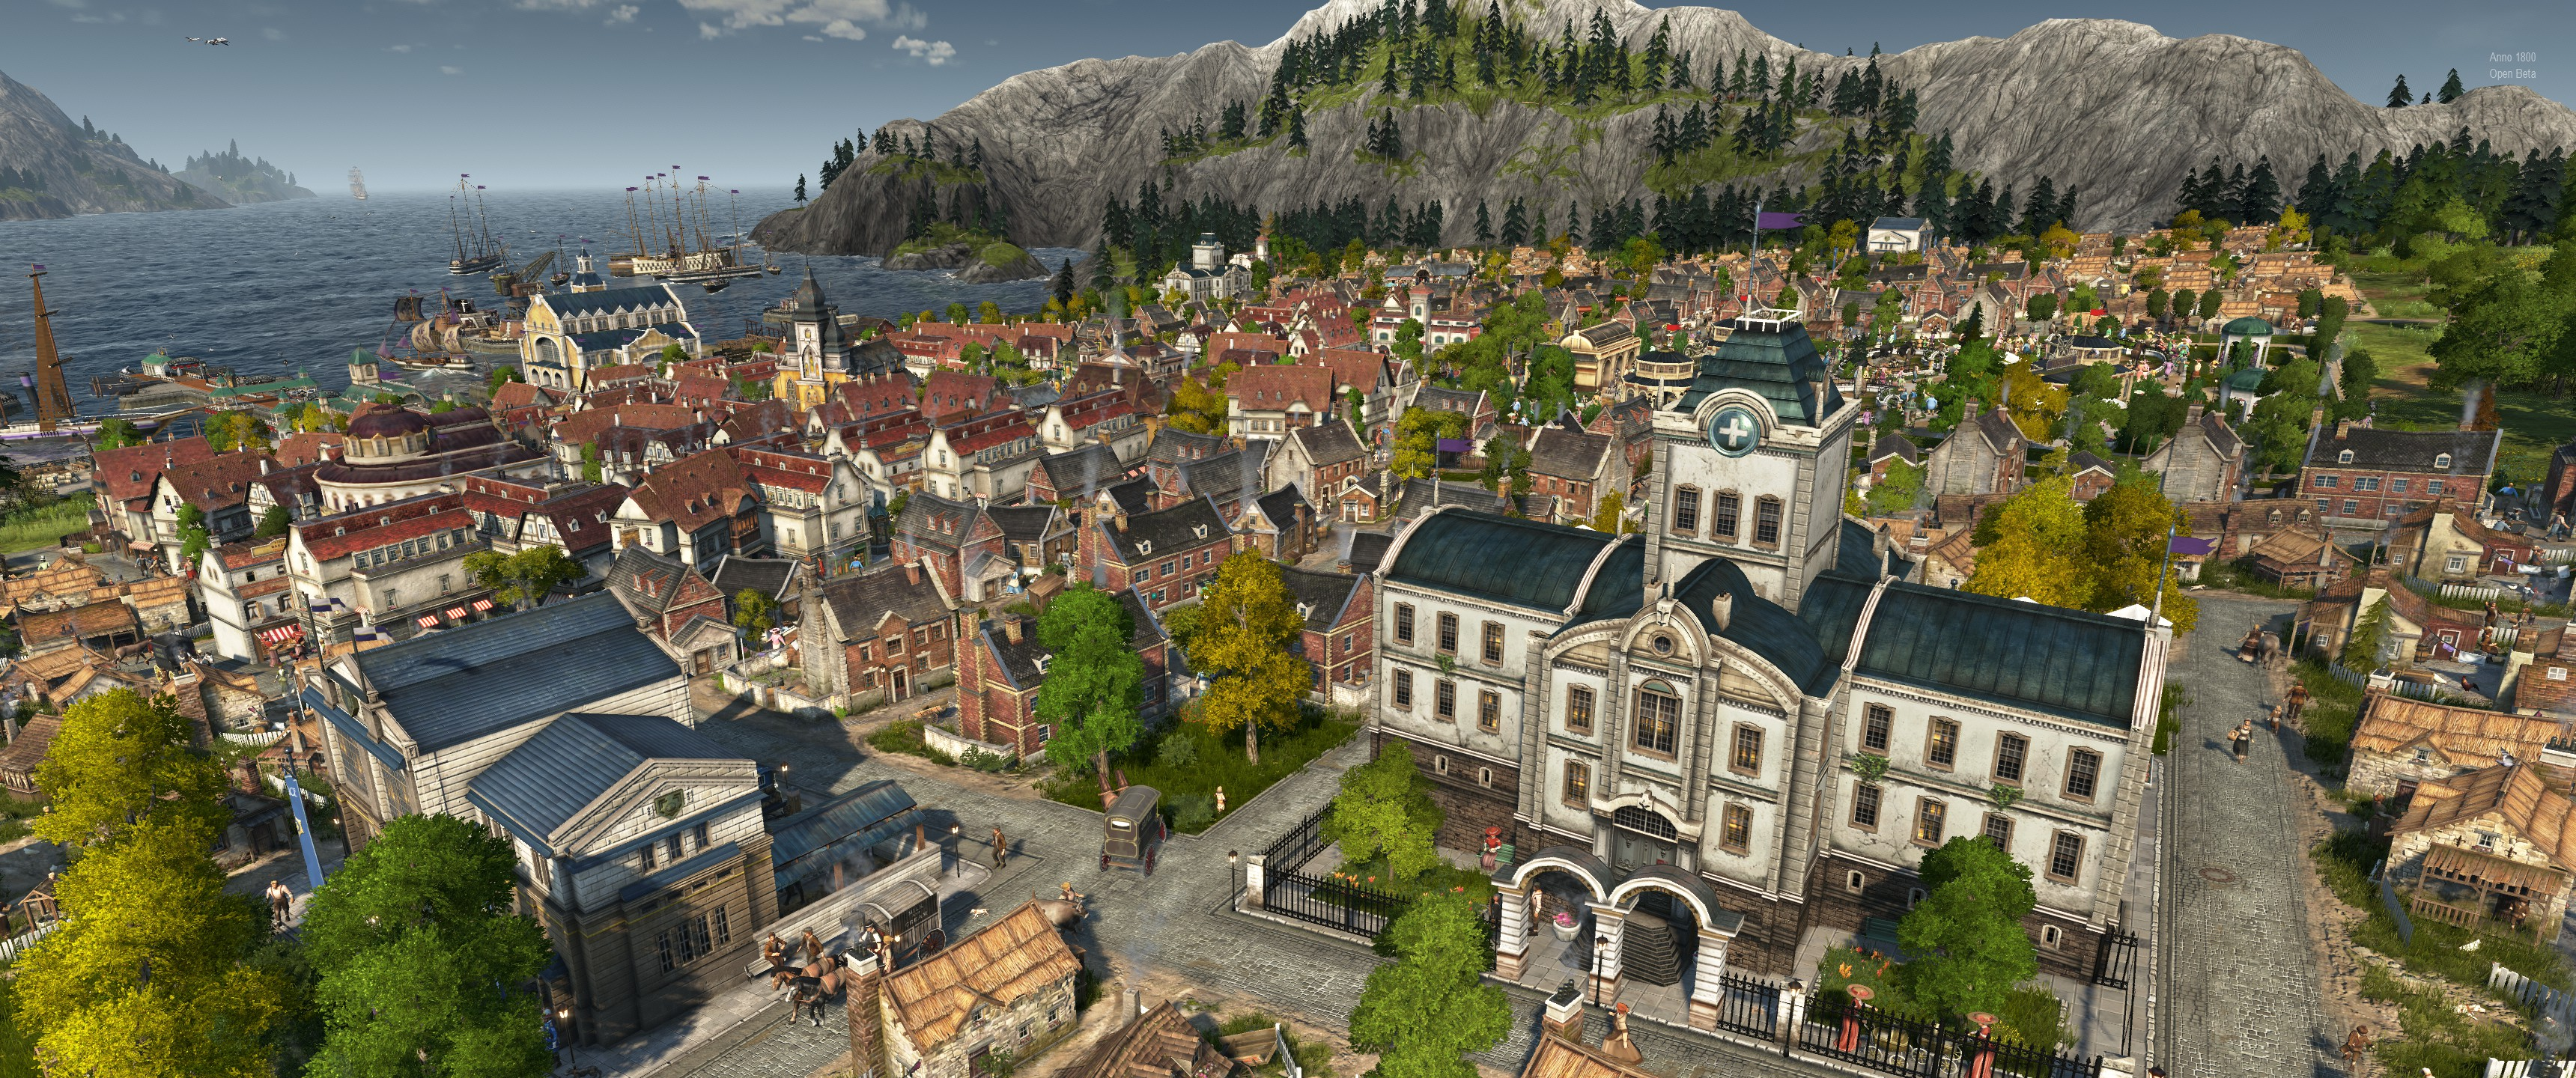 Anno-1800-Open-Beta2019-4-14-22-12-19